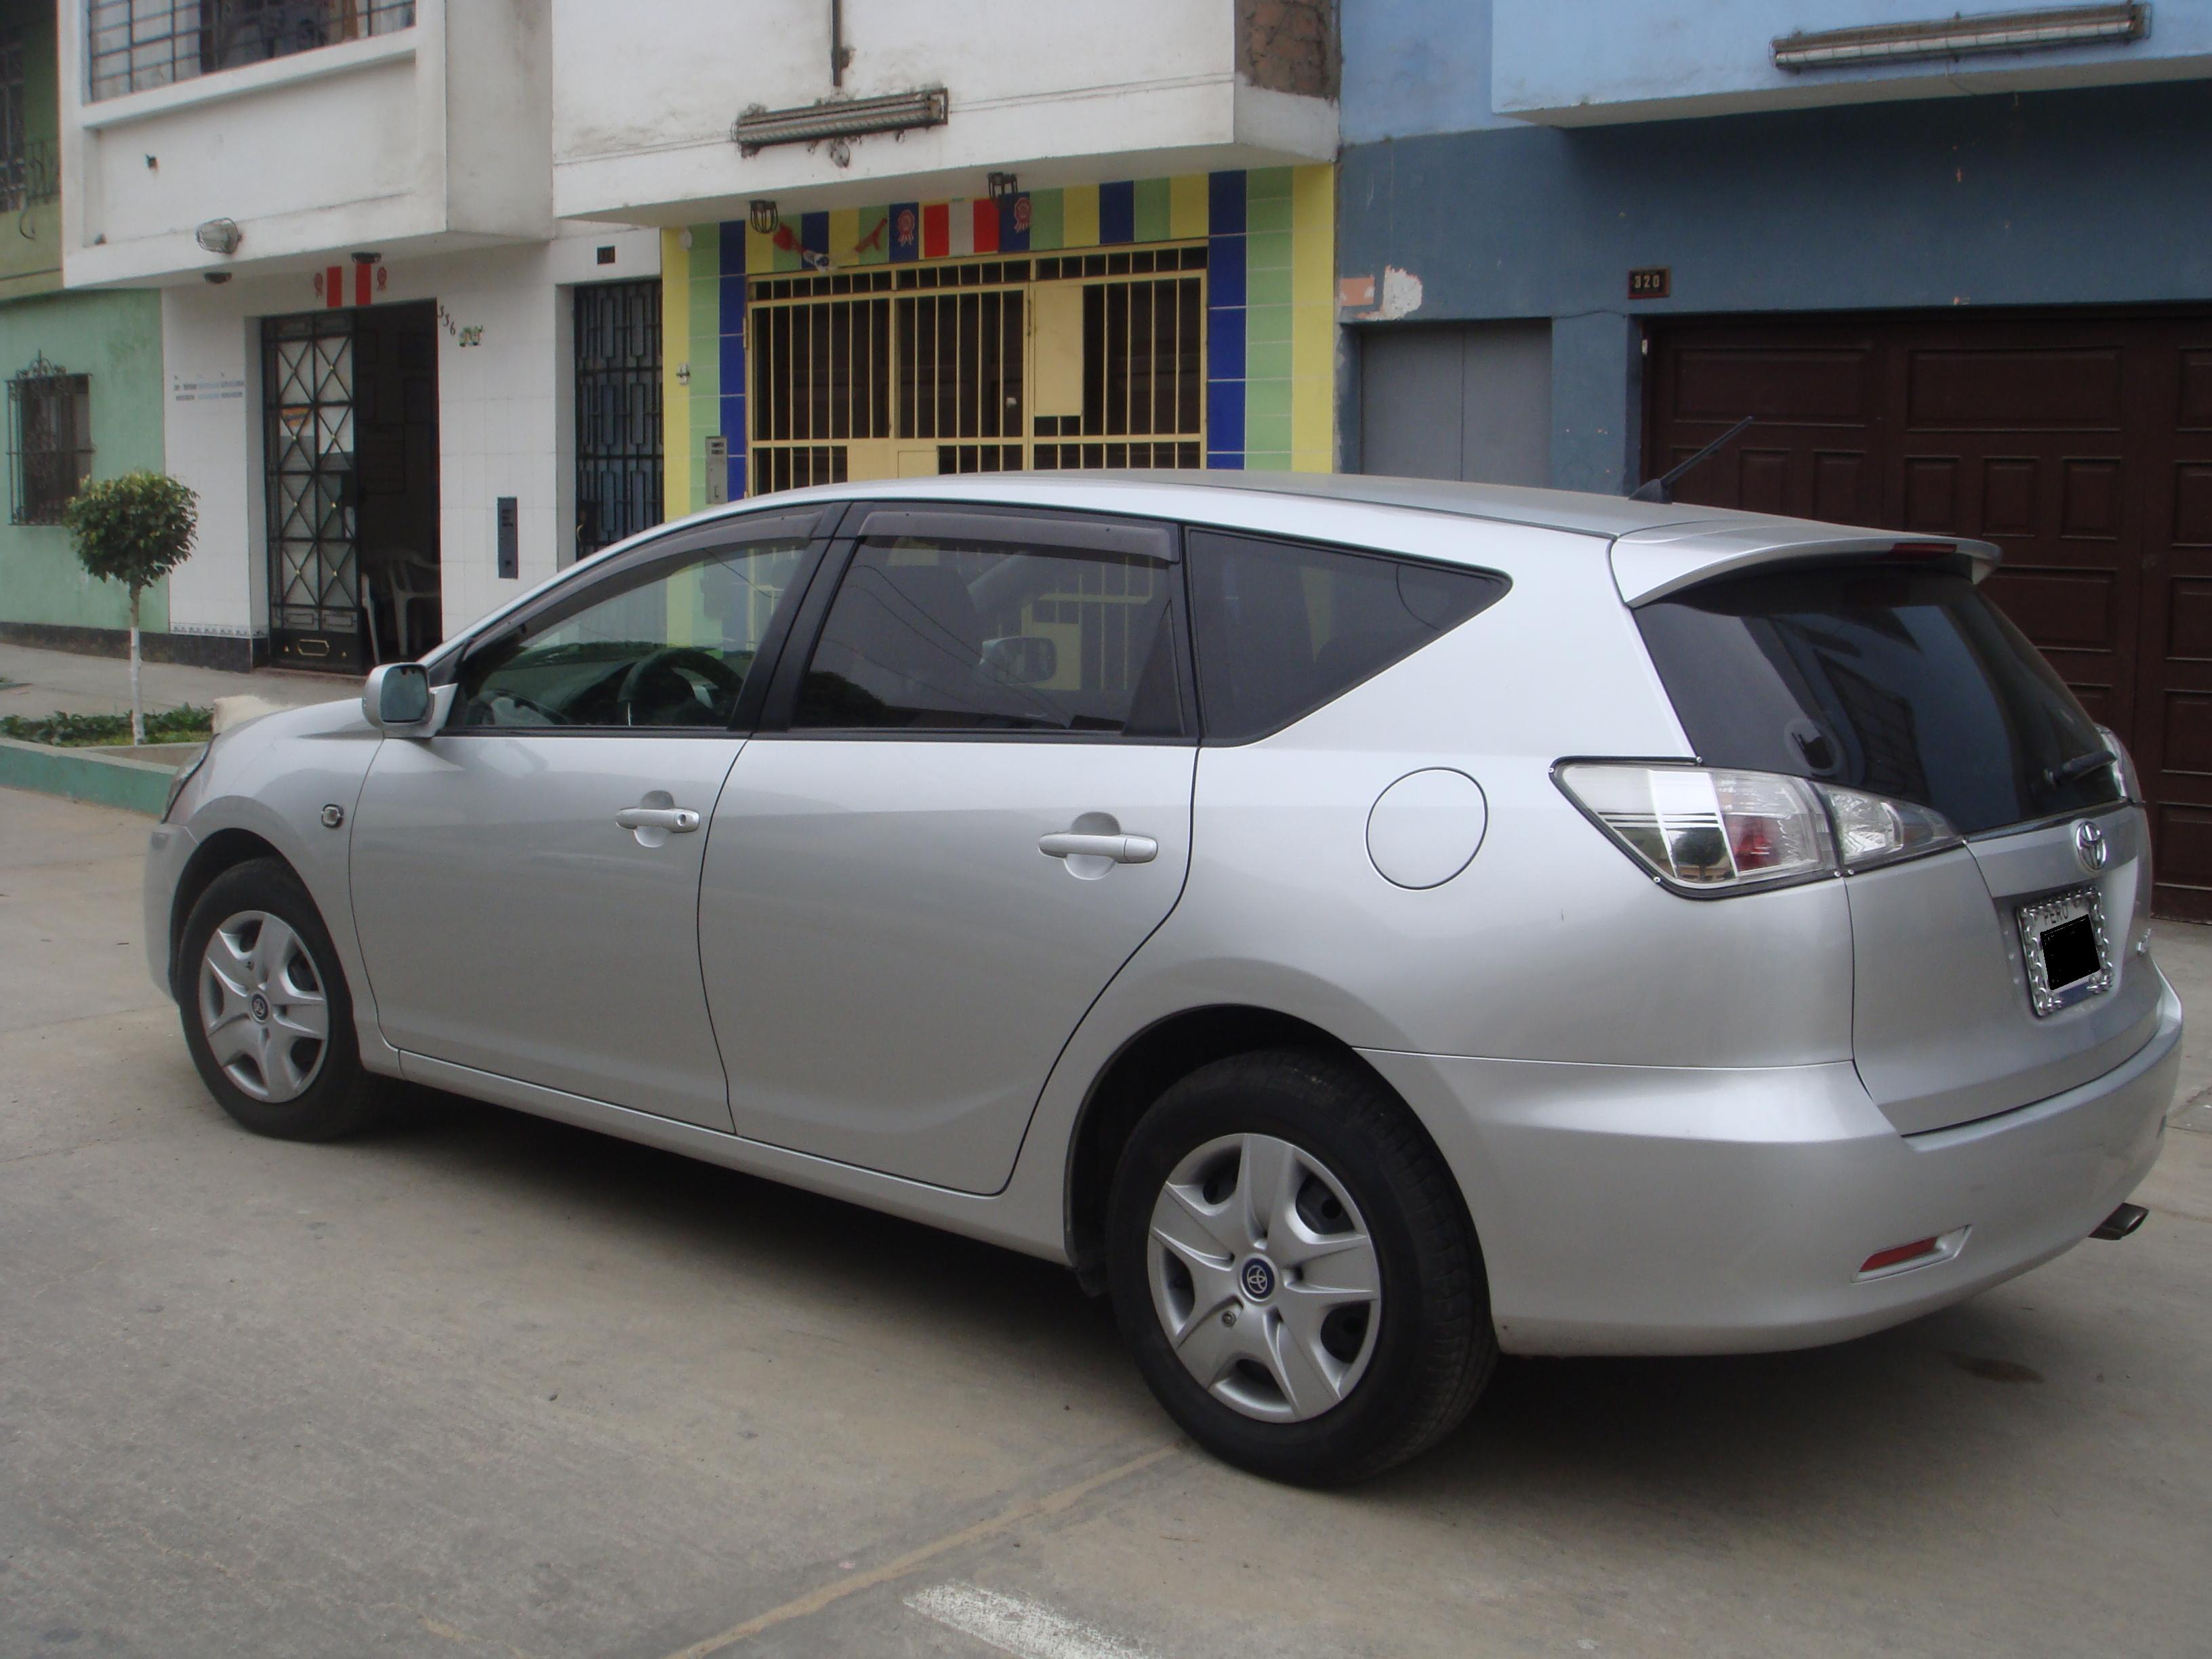 Toyota Caldina Pictures Information And Specs Wiring Diagram Cars 13